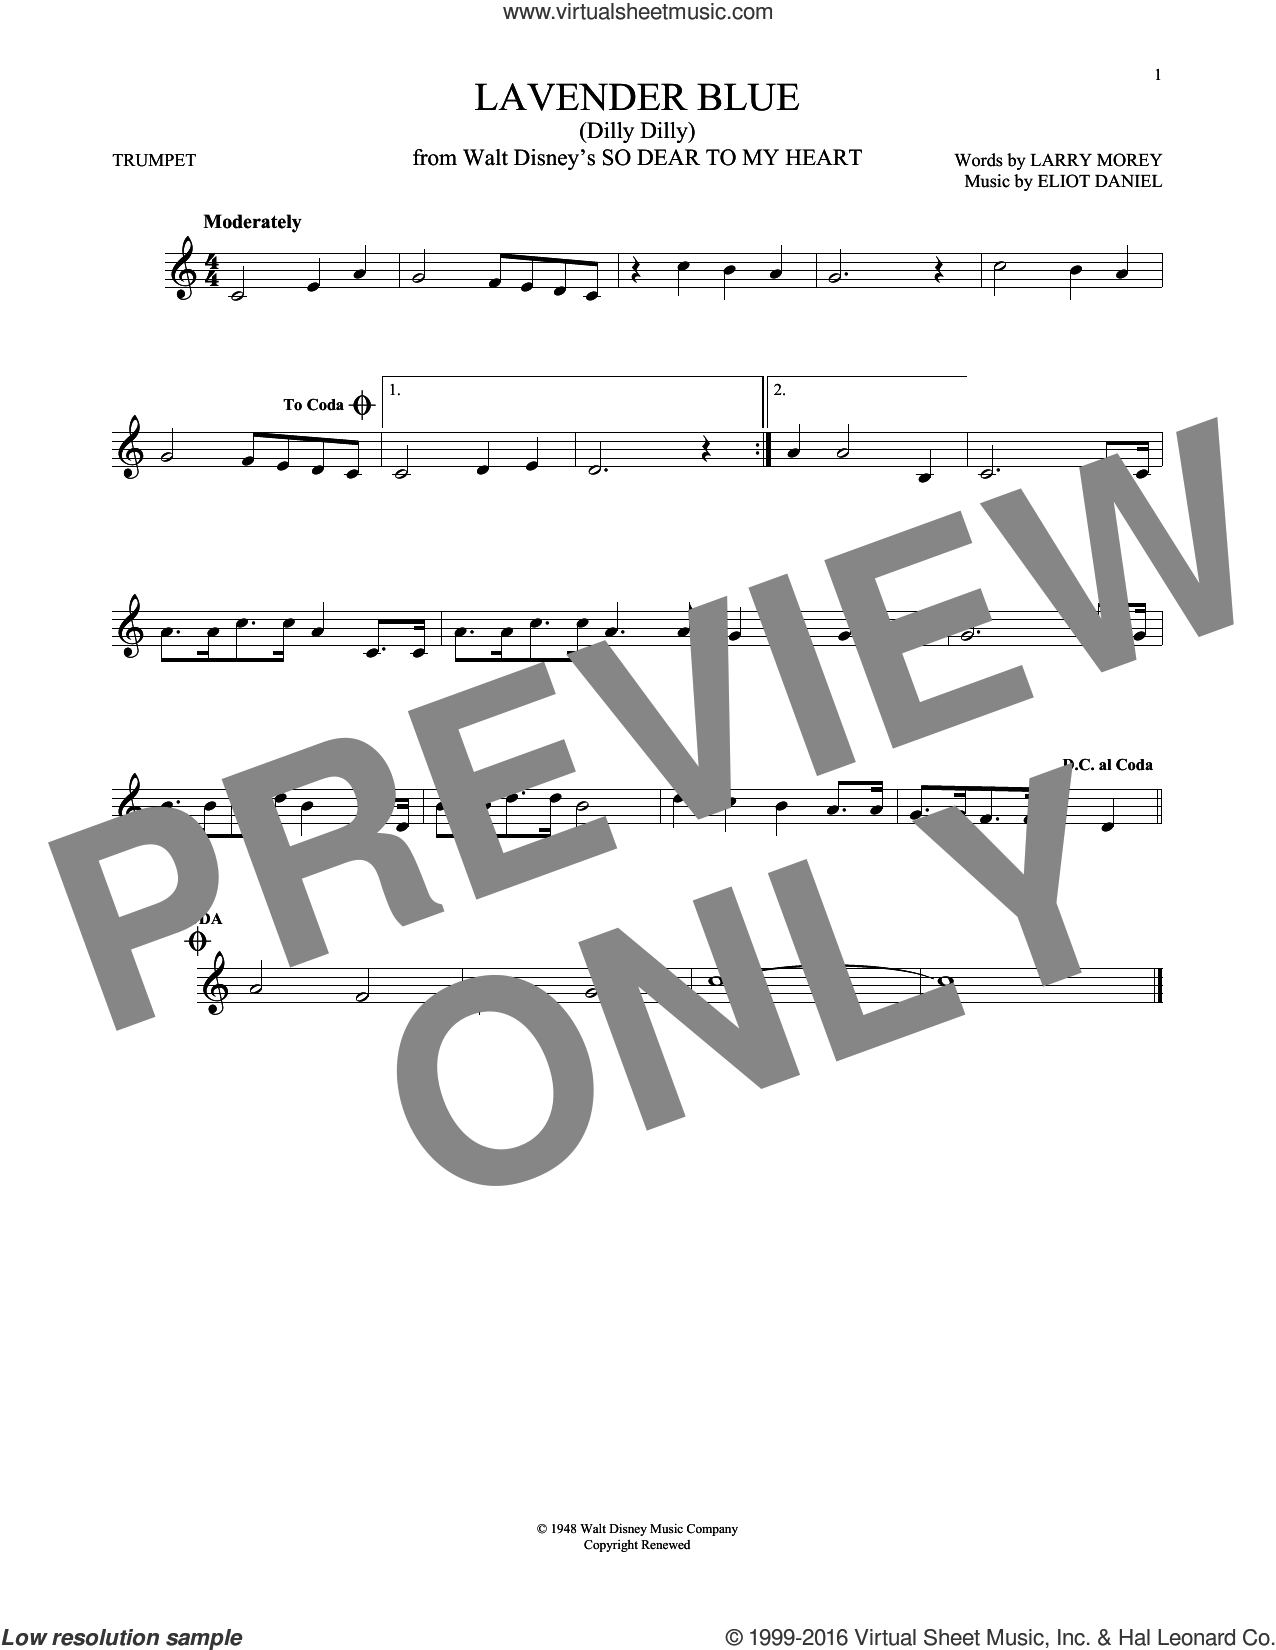 Lavender Blue (Dilly Dilly) sheet music for trumpet solo by Sammy Turner, Eliot Daniel and Larry Morey, intermediate skill level